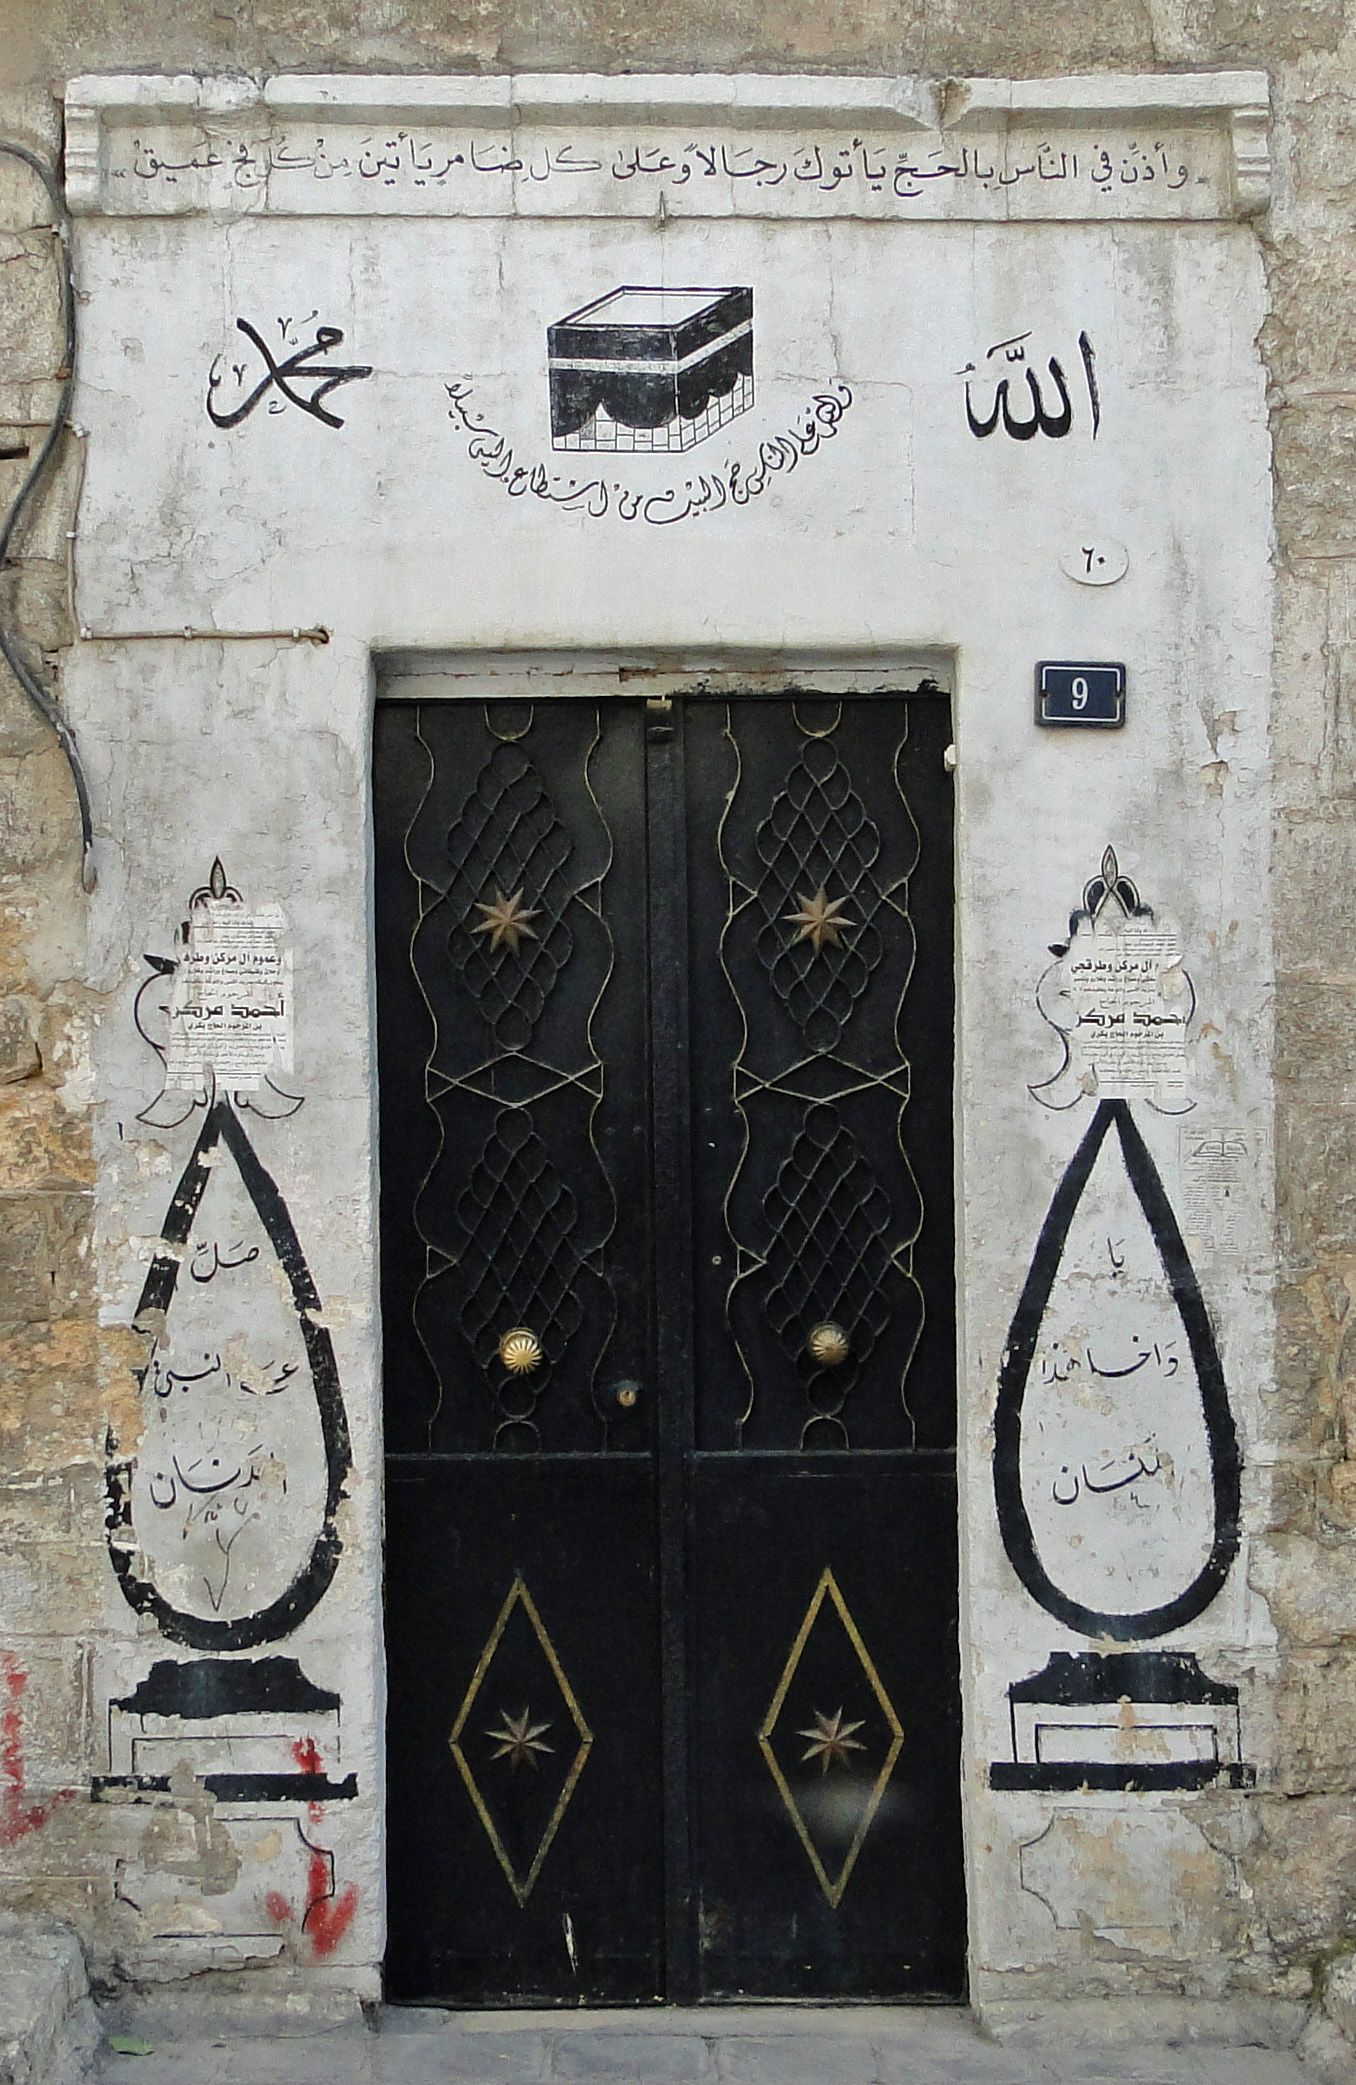 Aleppo Syria Depiction Of Kaaba Over Door The Owner Has Probably Visited Mecca For The Hadj Dorr Varlden